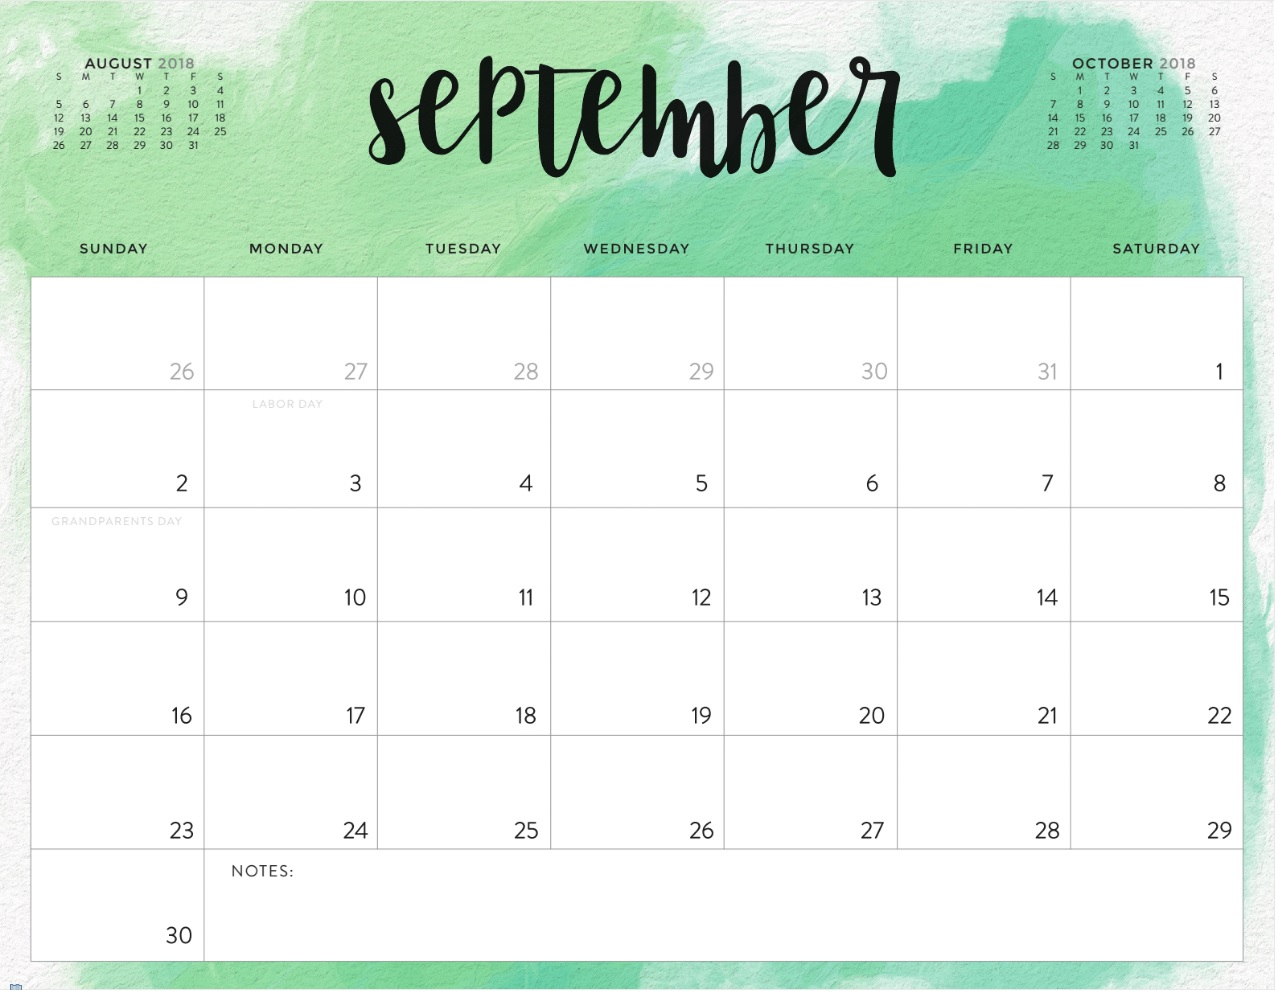 September 2018 Printable Calendar Word Template- September 2018 with Free Printable 2020 Waterproof Calendars